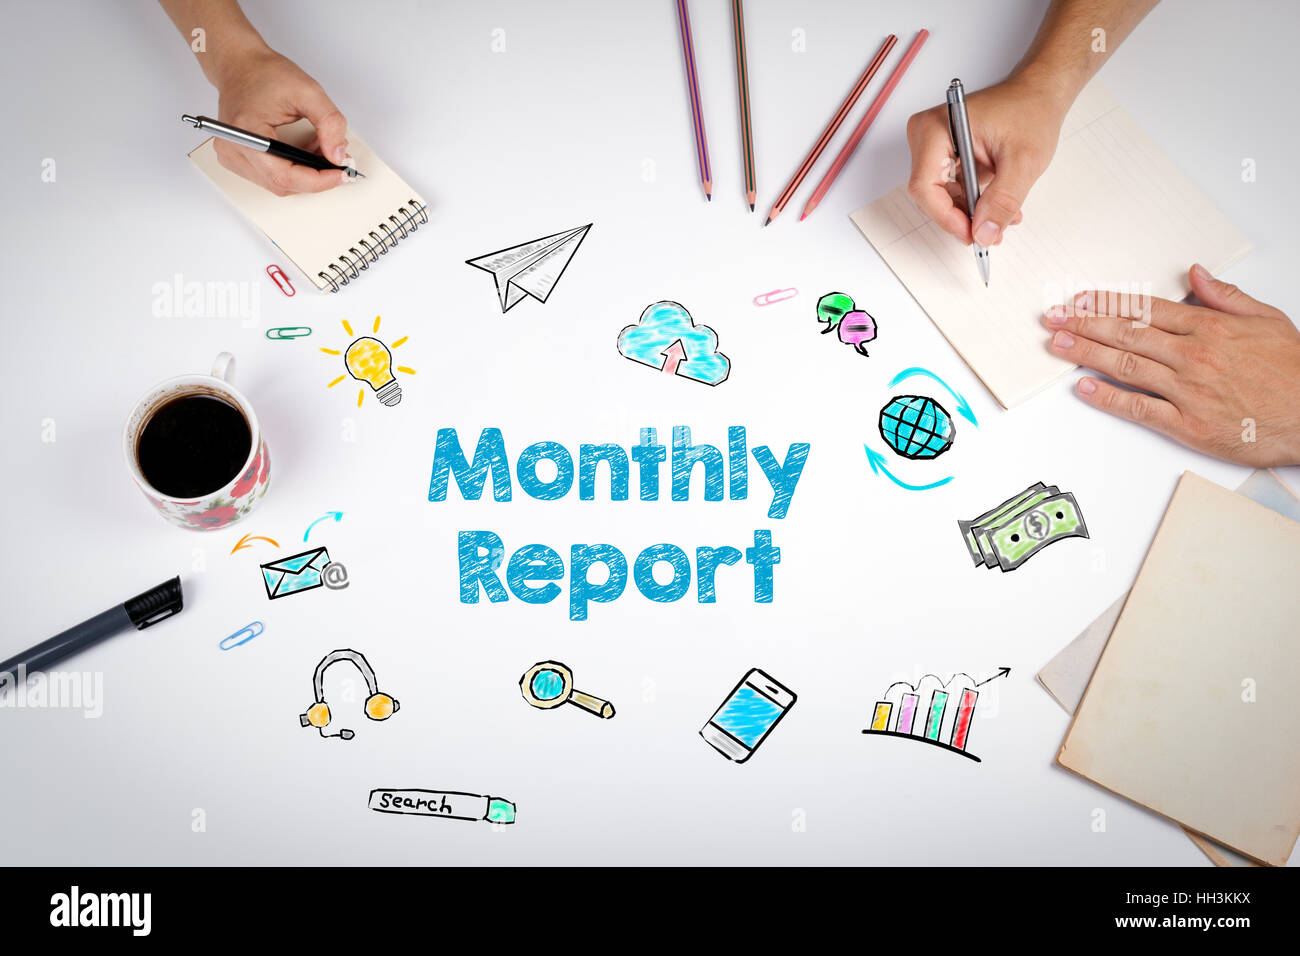 Monthly Report. The meeting at the white office table. - Stock Image